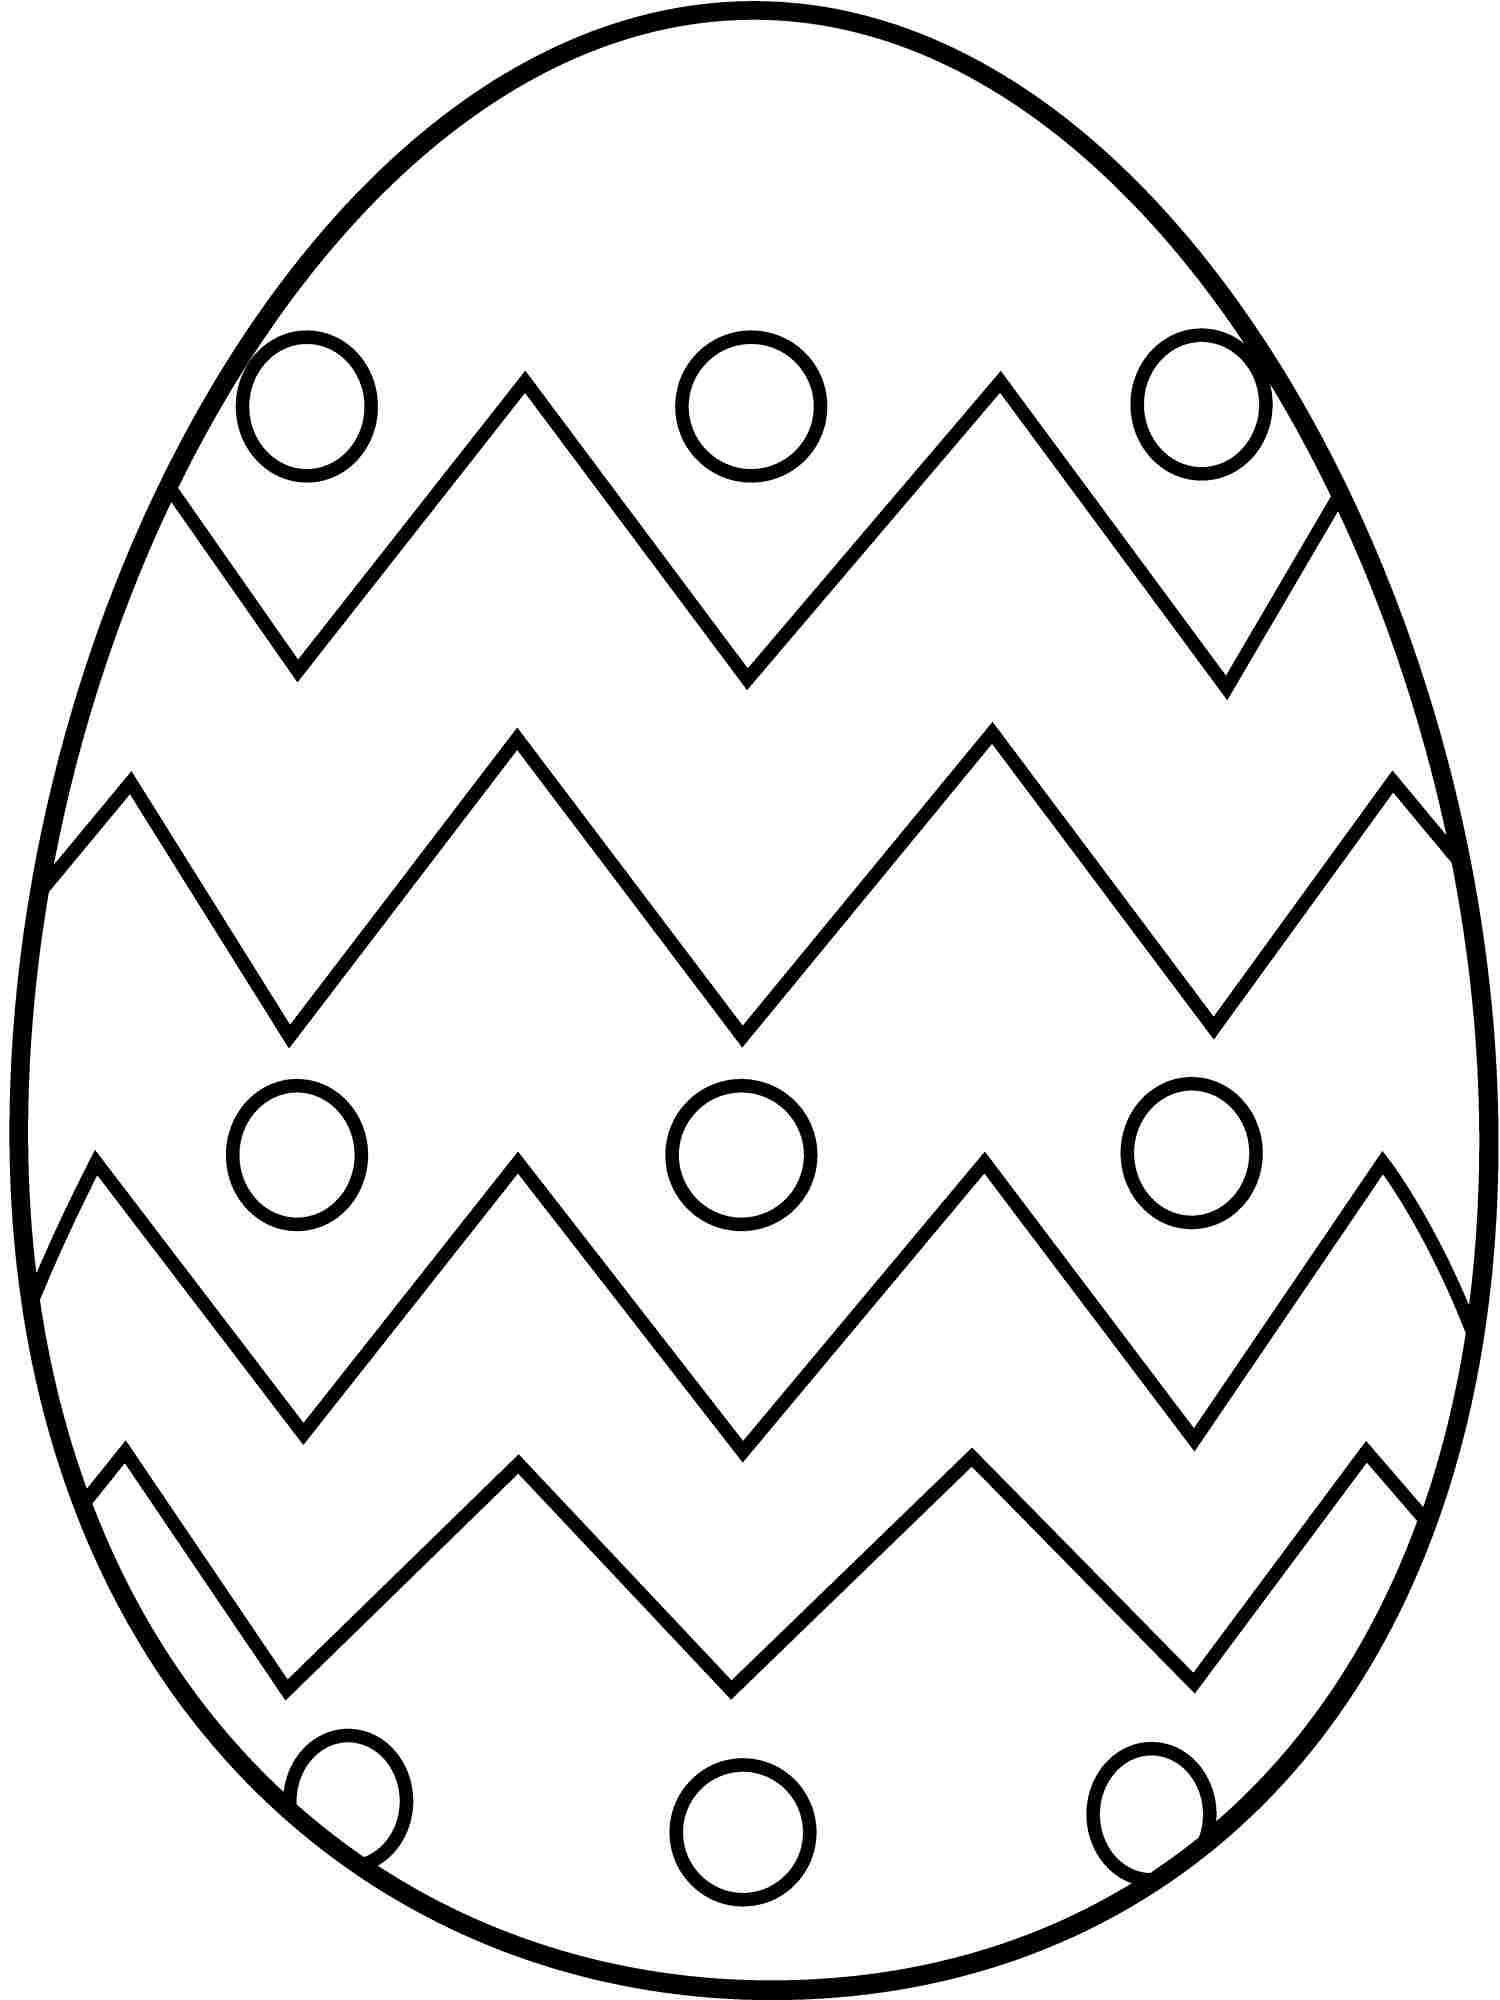 Cool Easter Coloring Pages Free Printable Free Printable Easter Coloring Pages Easter Egg Coloring Pages Coloring Easter Eggs